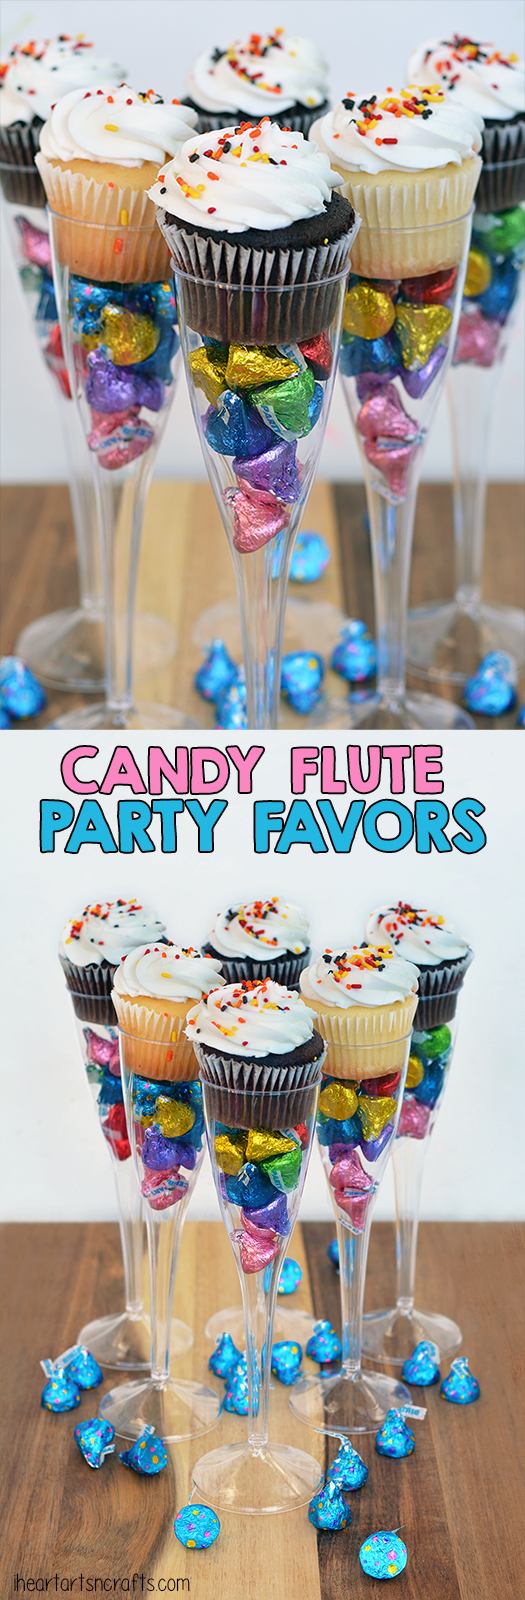 Candy Filled Flute Birthday Party Favors